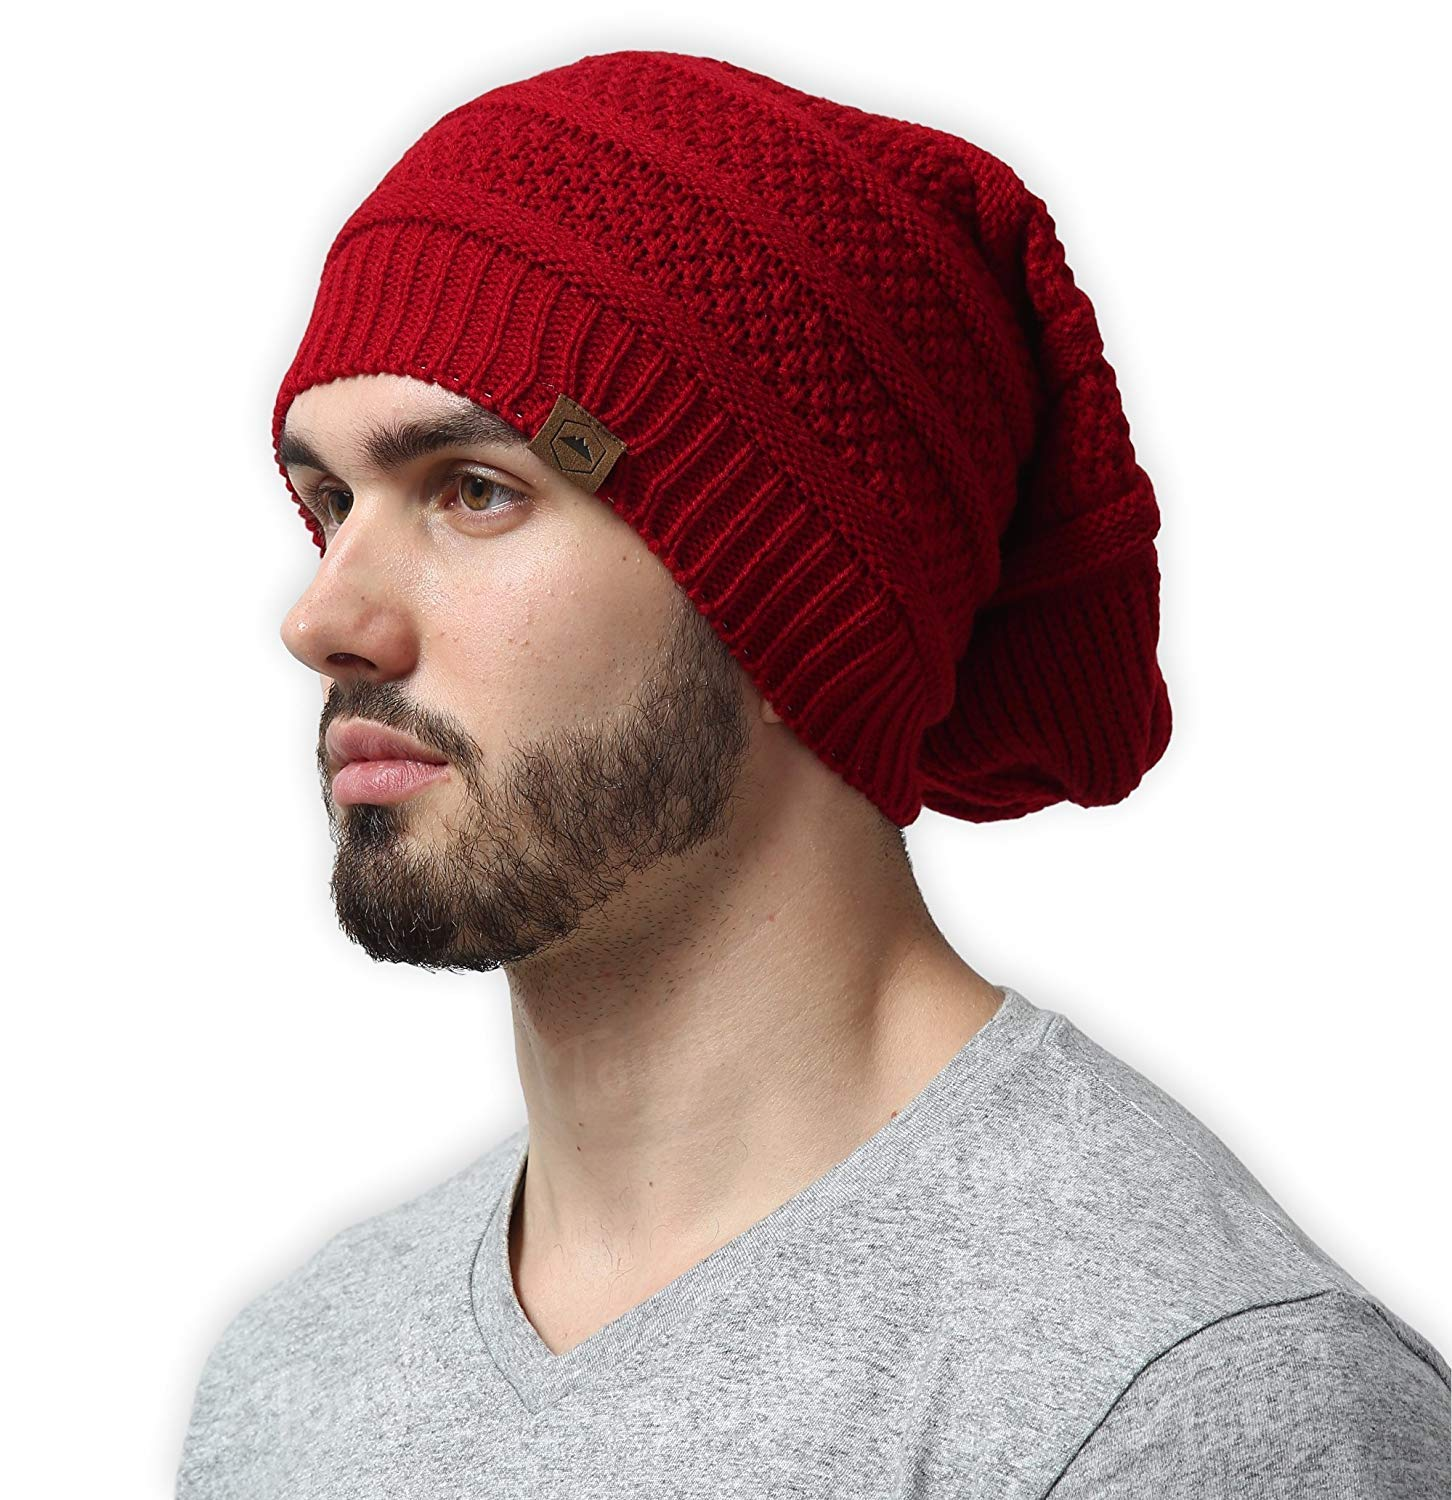 Slouchy Cable Knit Beanie - Chunky, Oversized Slouch Beanie Hats for Men & Women - Stay Warm & Stylish - Serious Beanies for Serious Style Tough Headwear